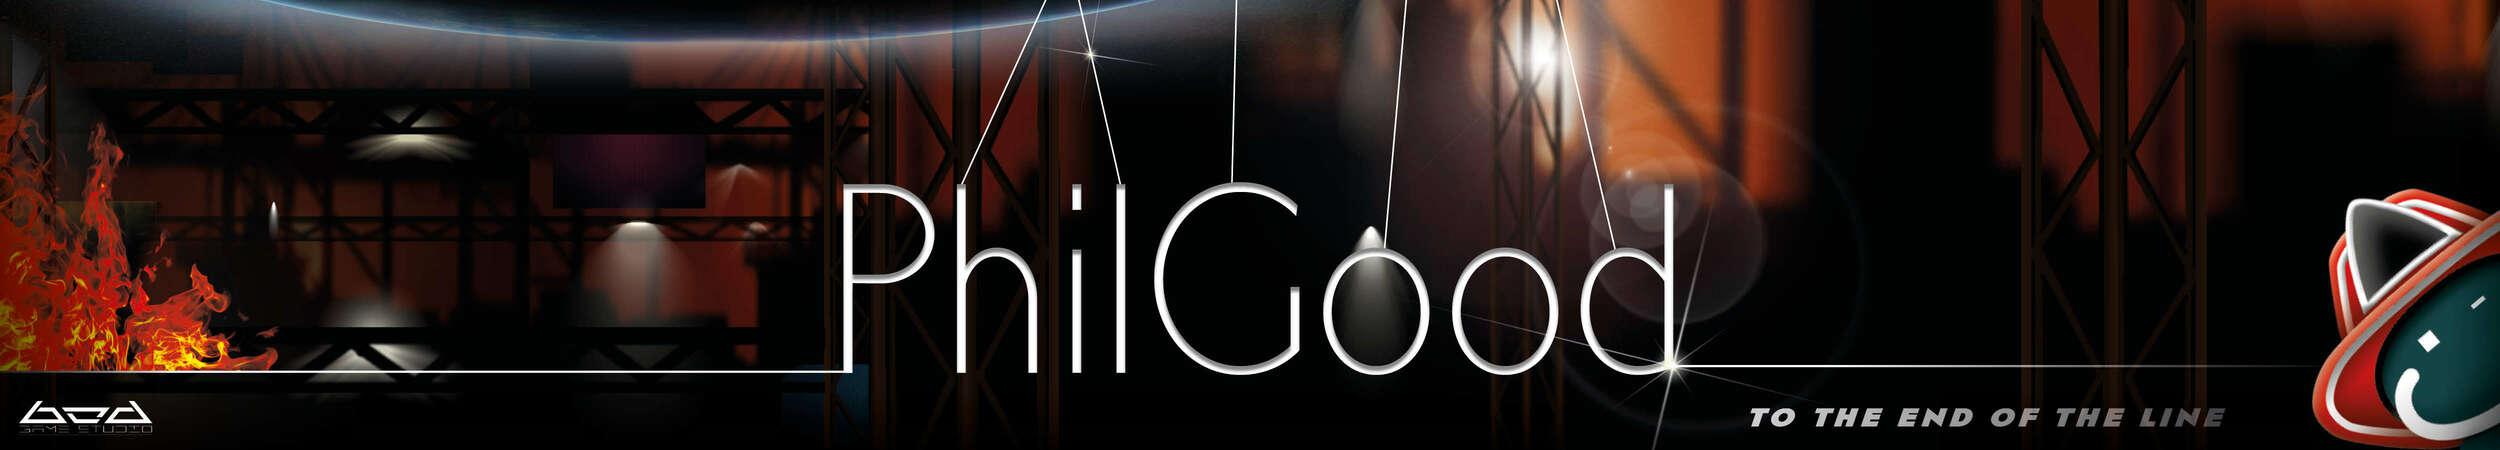 Philgood - Bodgamestudio - banner - en-tete - header - youtube